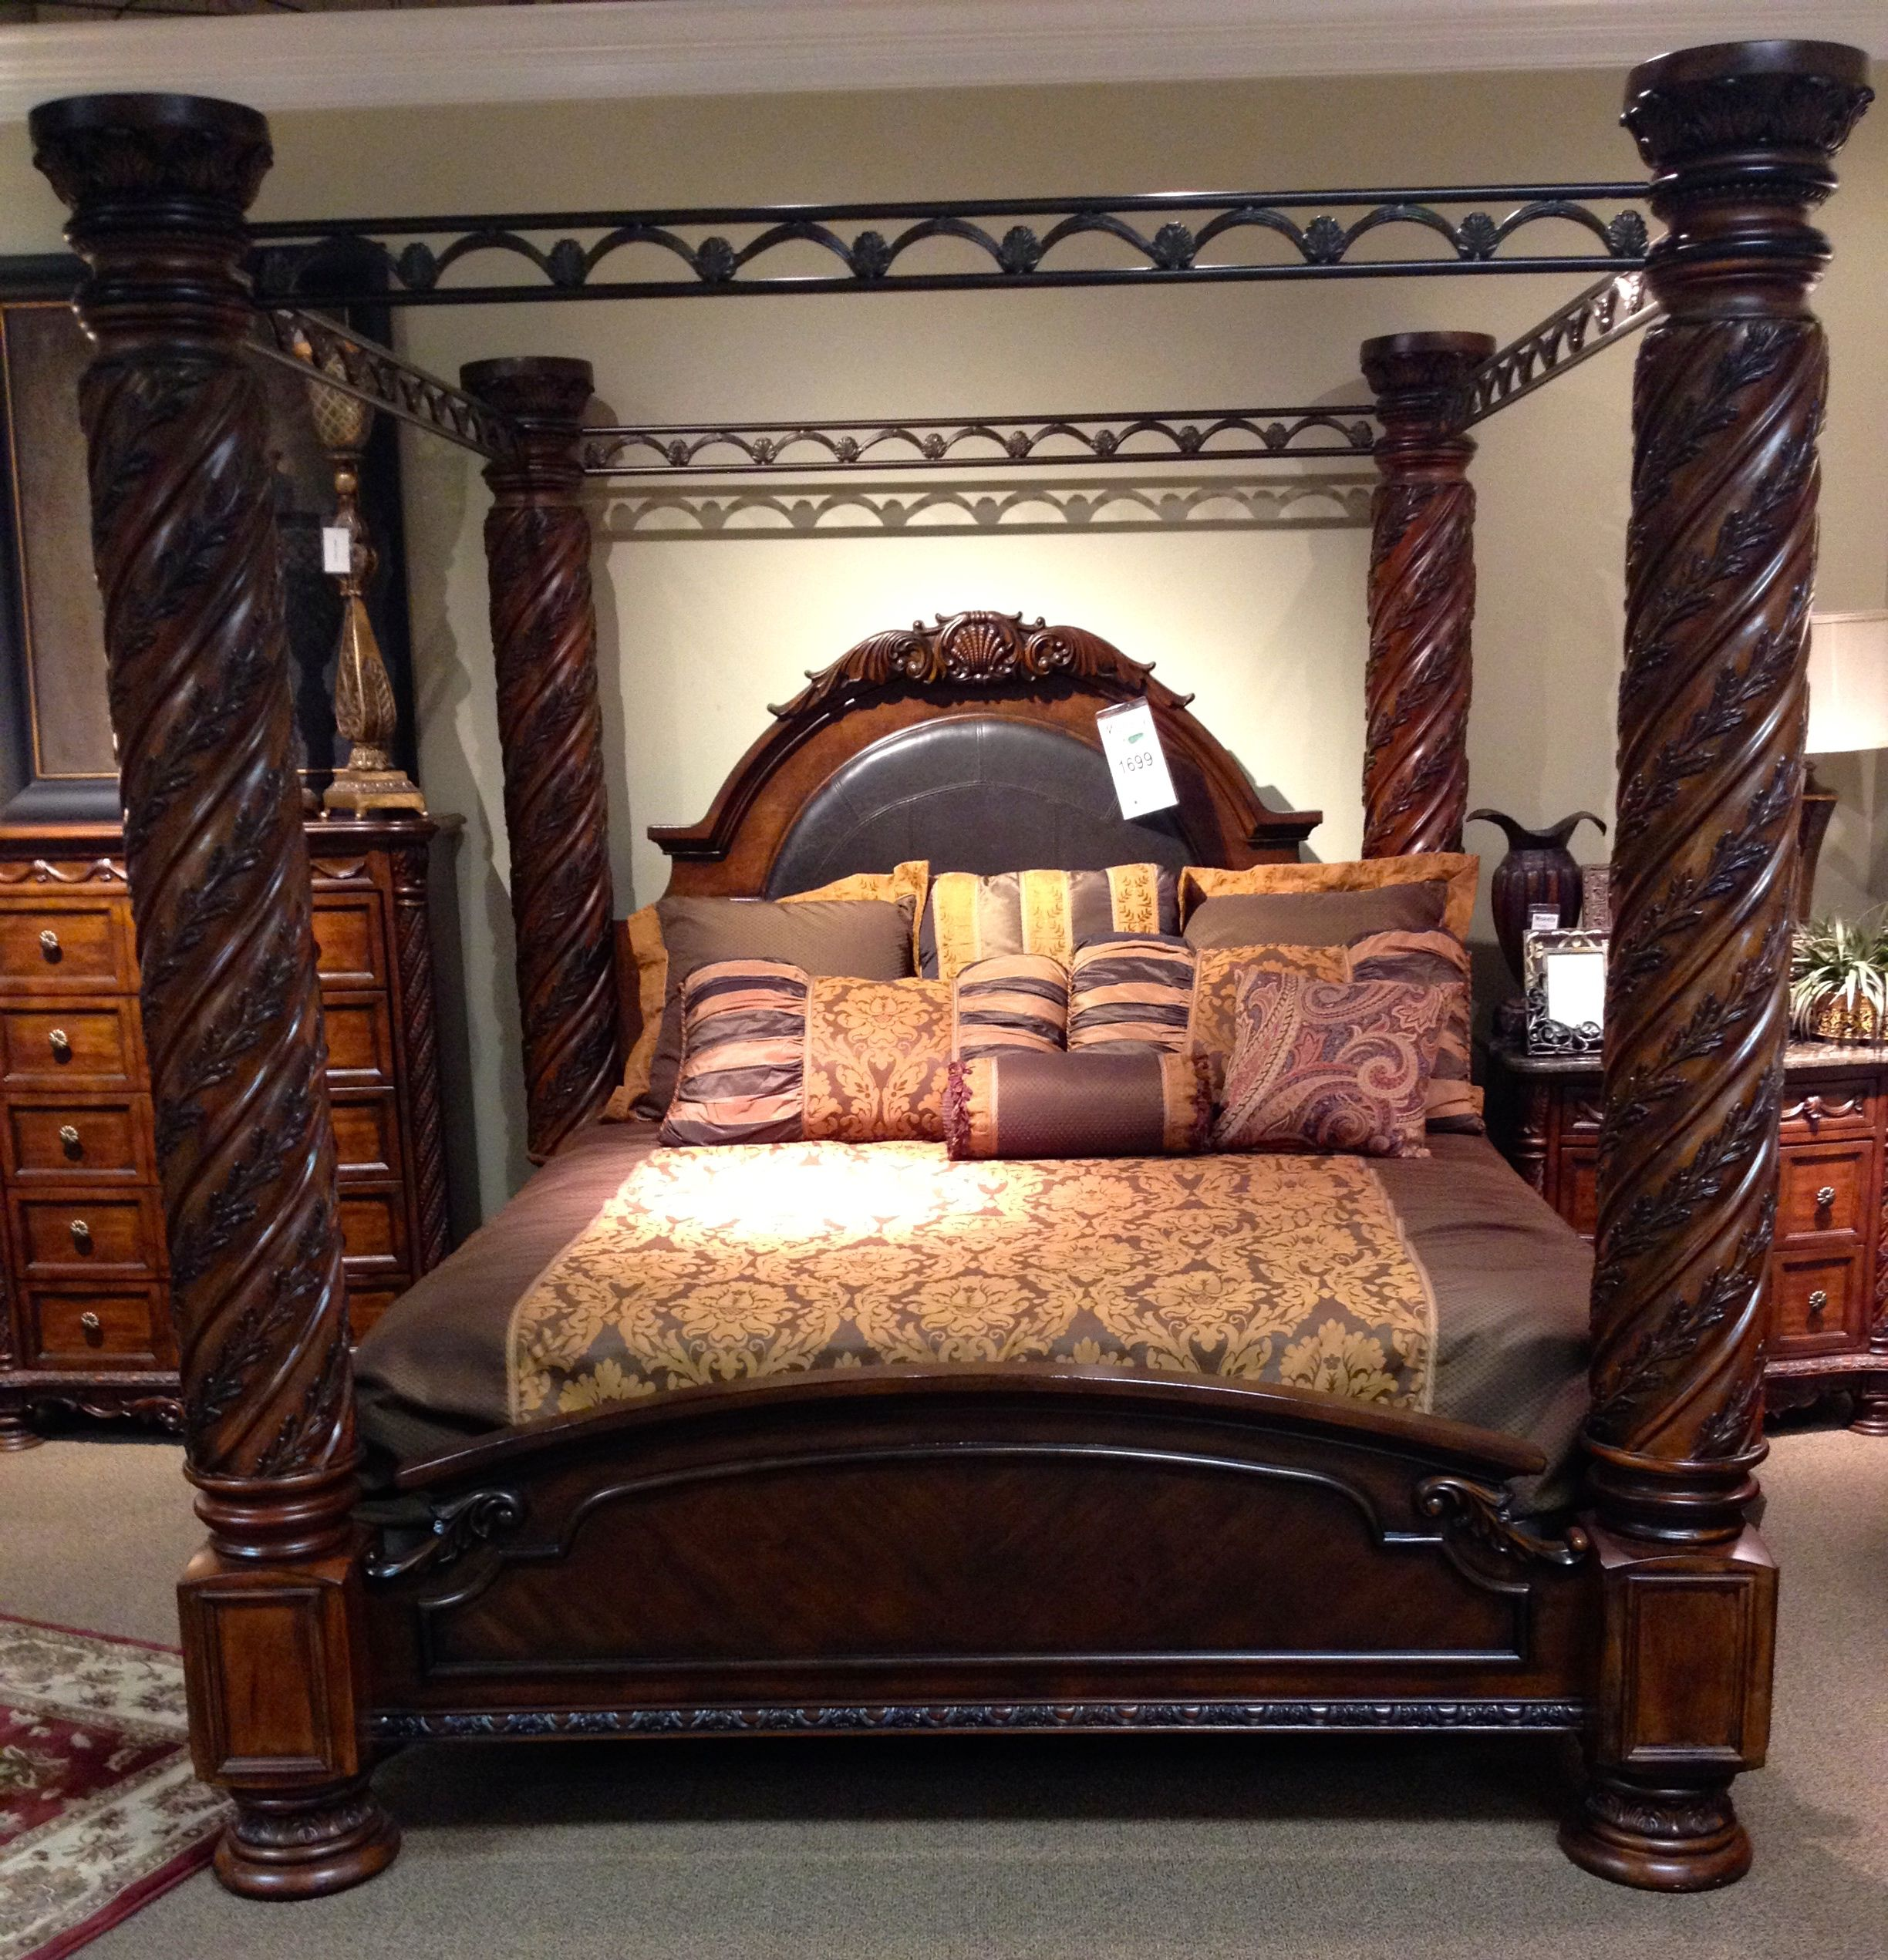 King Canopy Bed Miskellys I Have A Friend